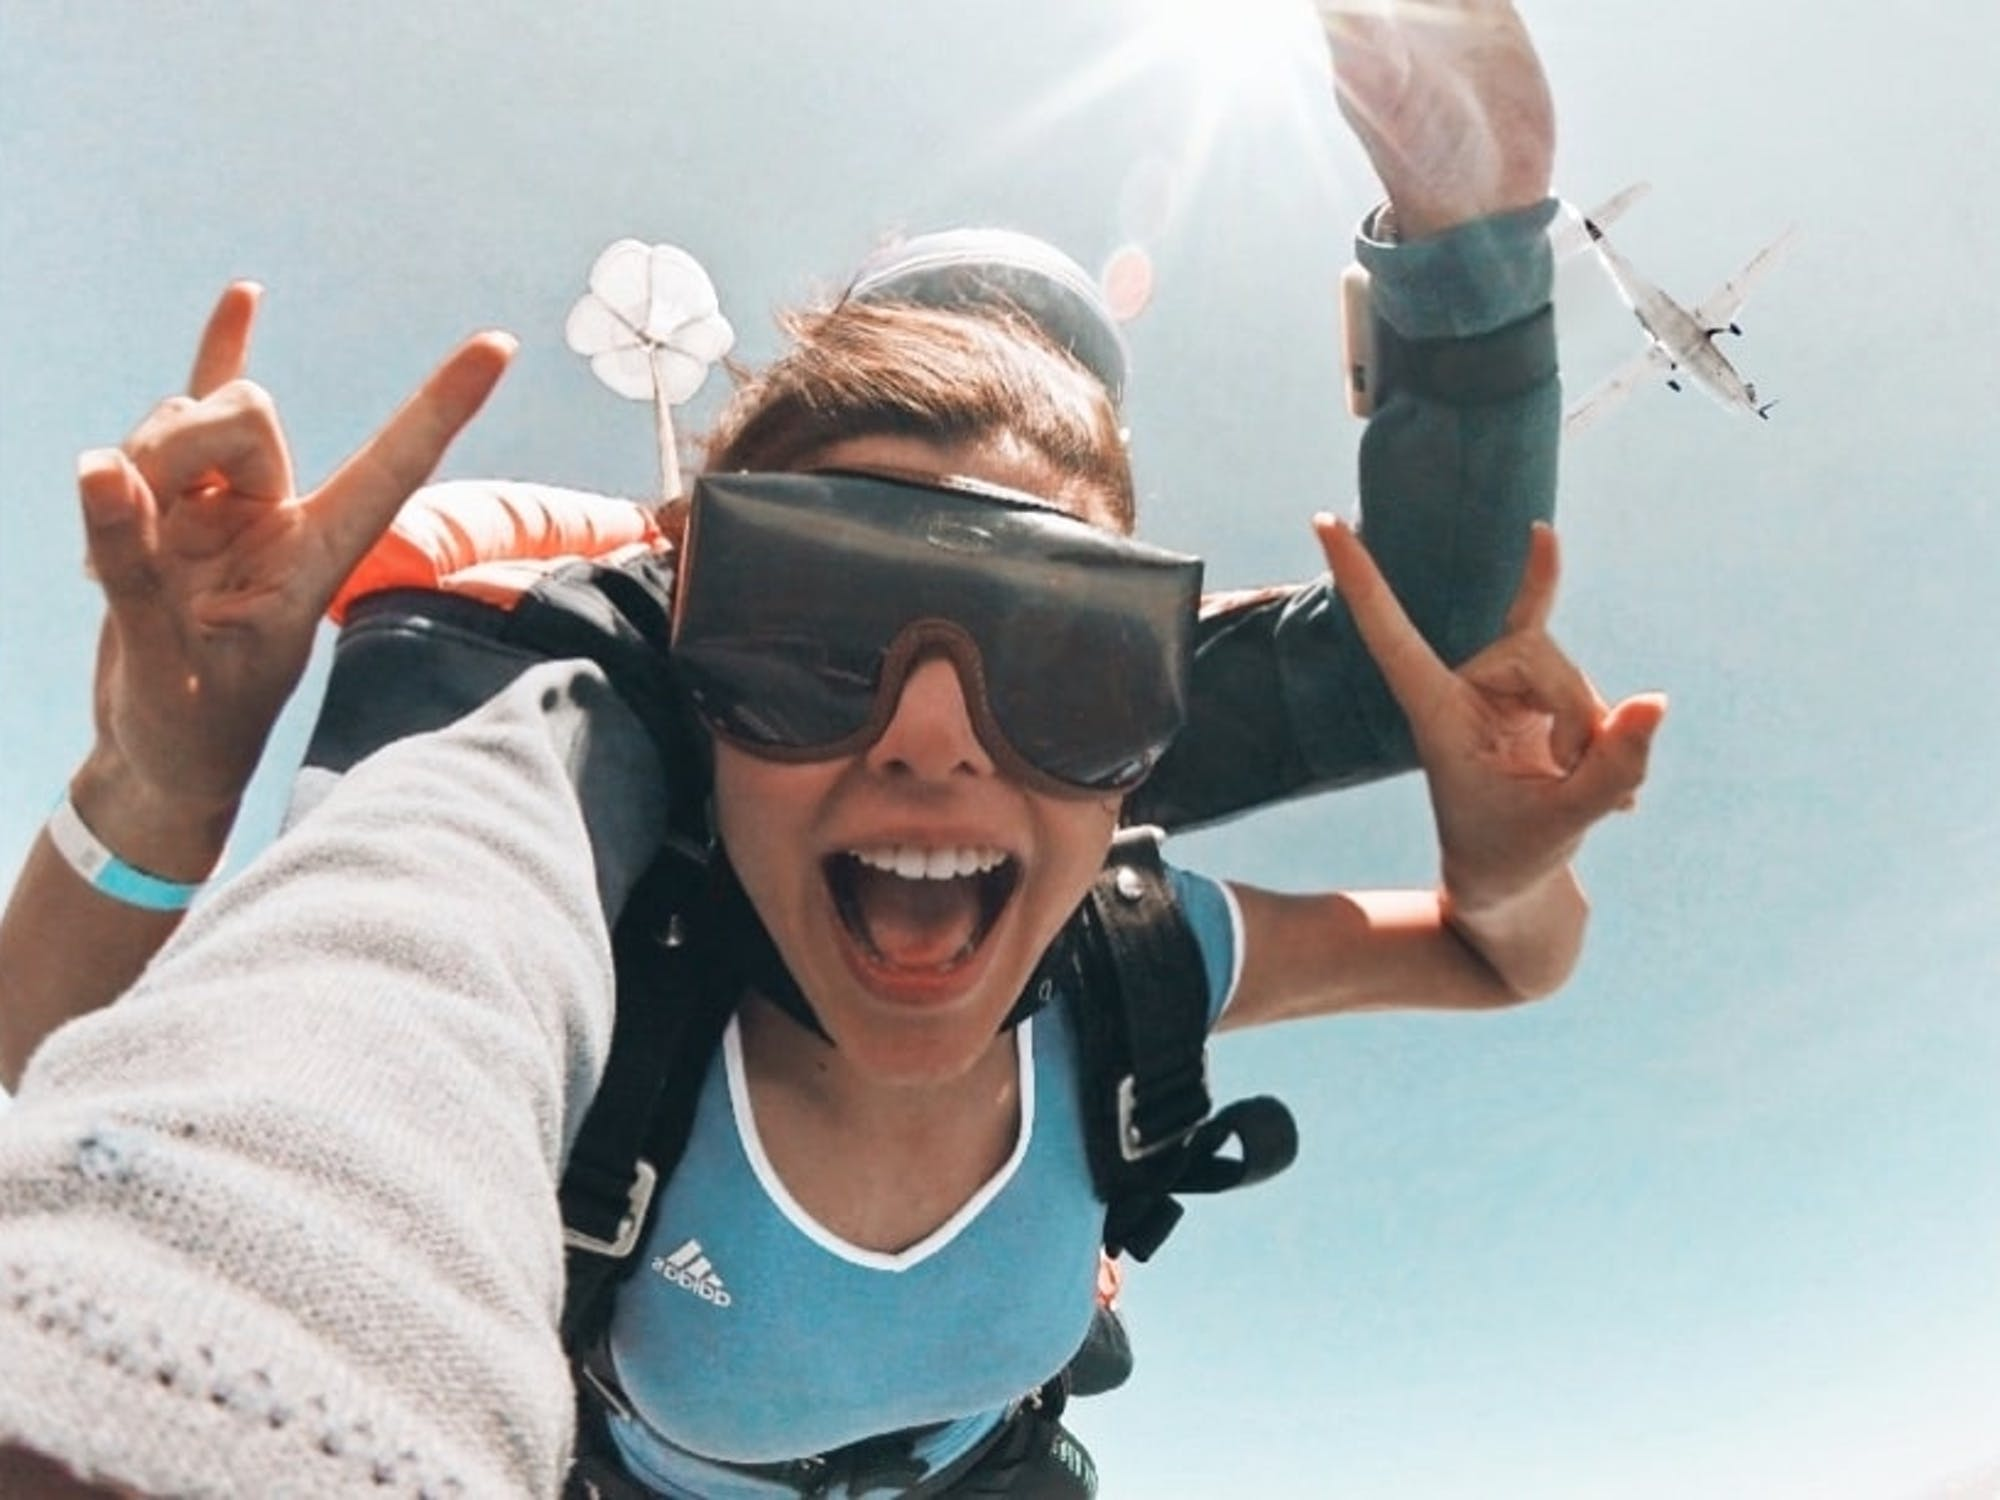 A young woman throws up horns while tandem-skydiving through the air. A plane flies past in the background above